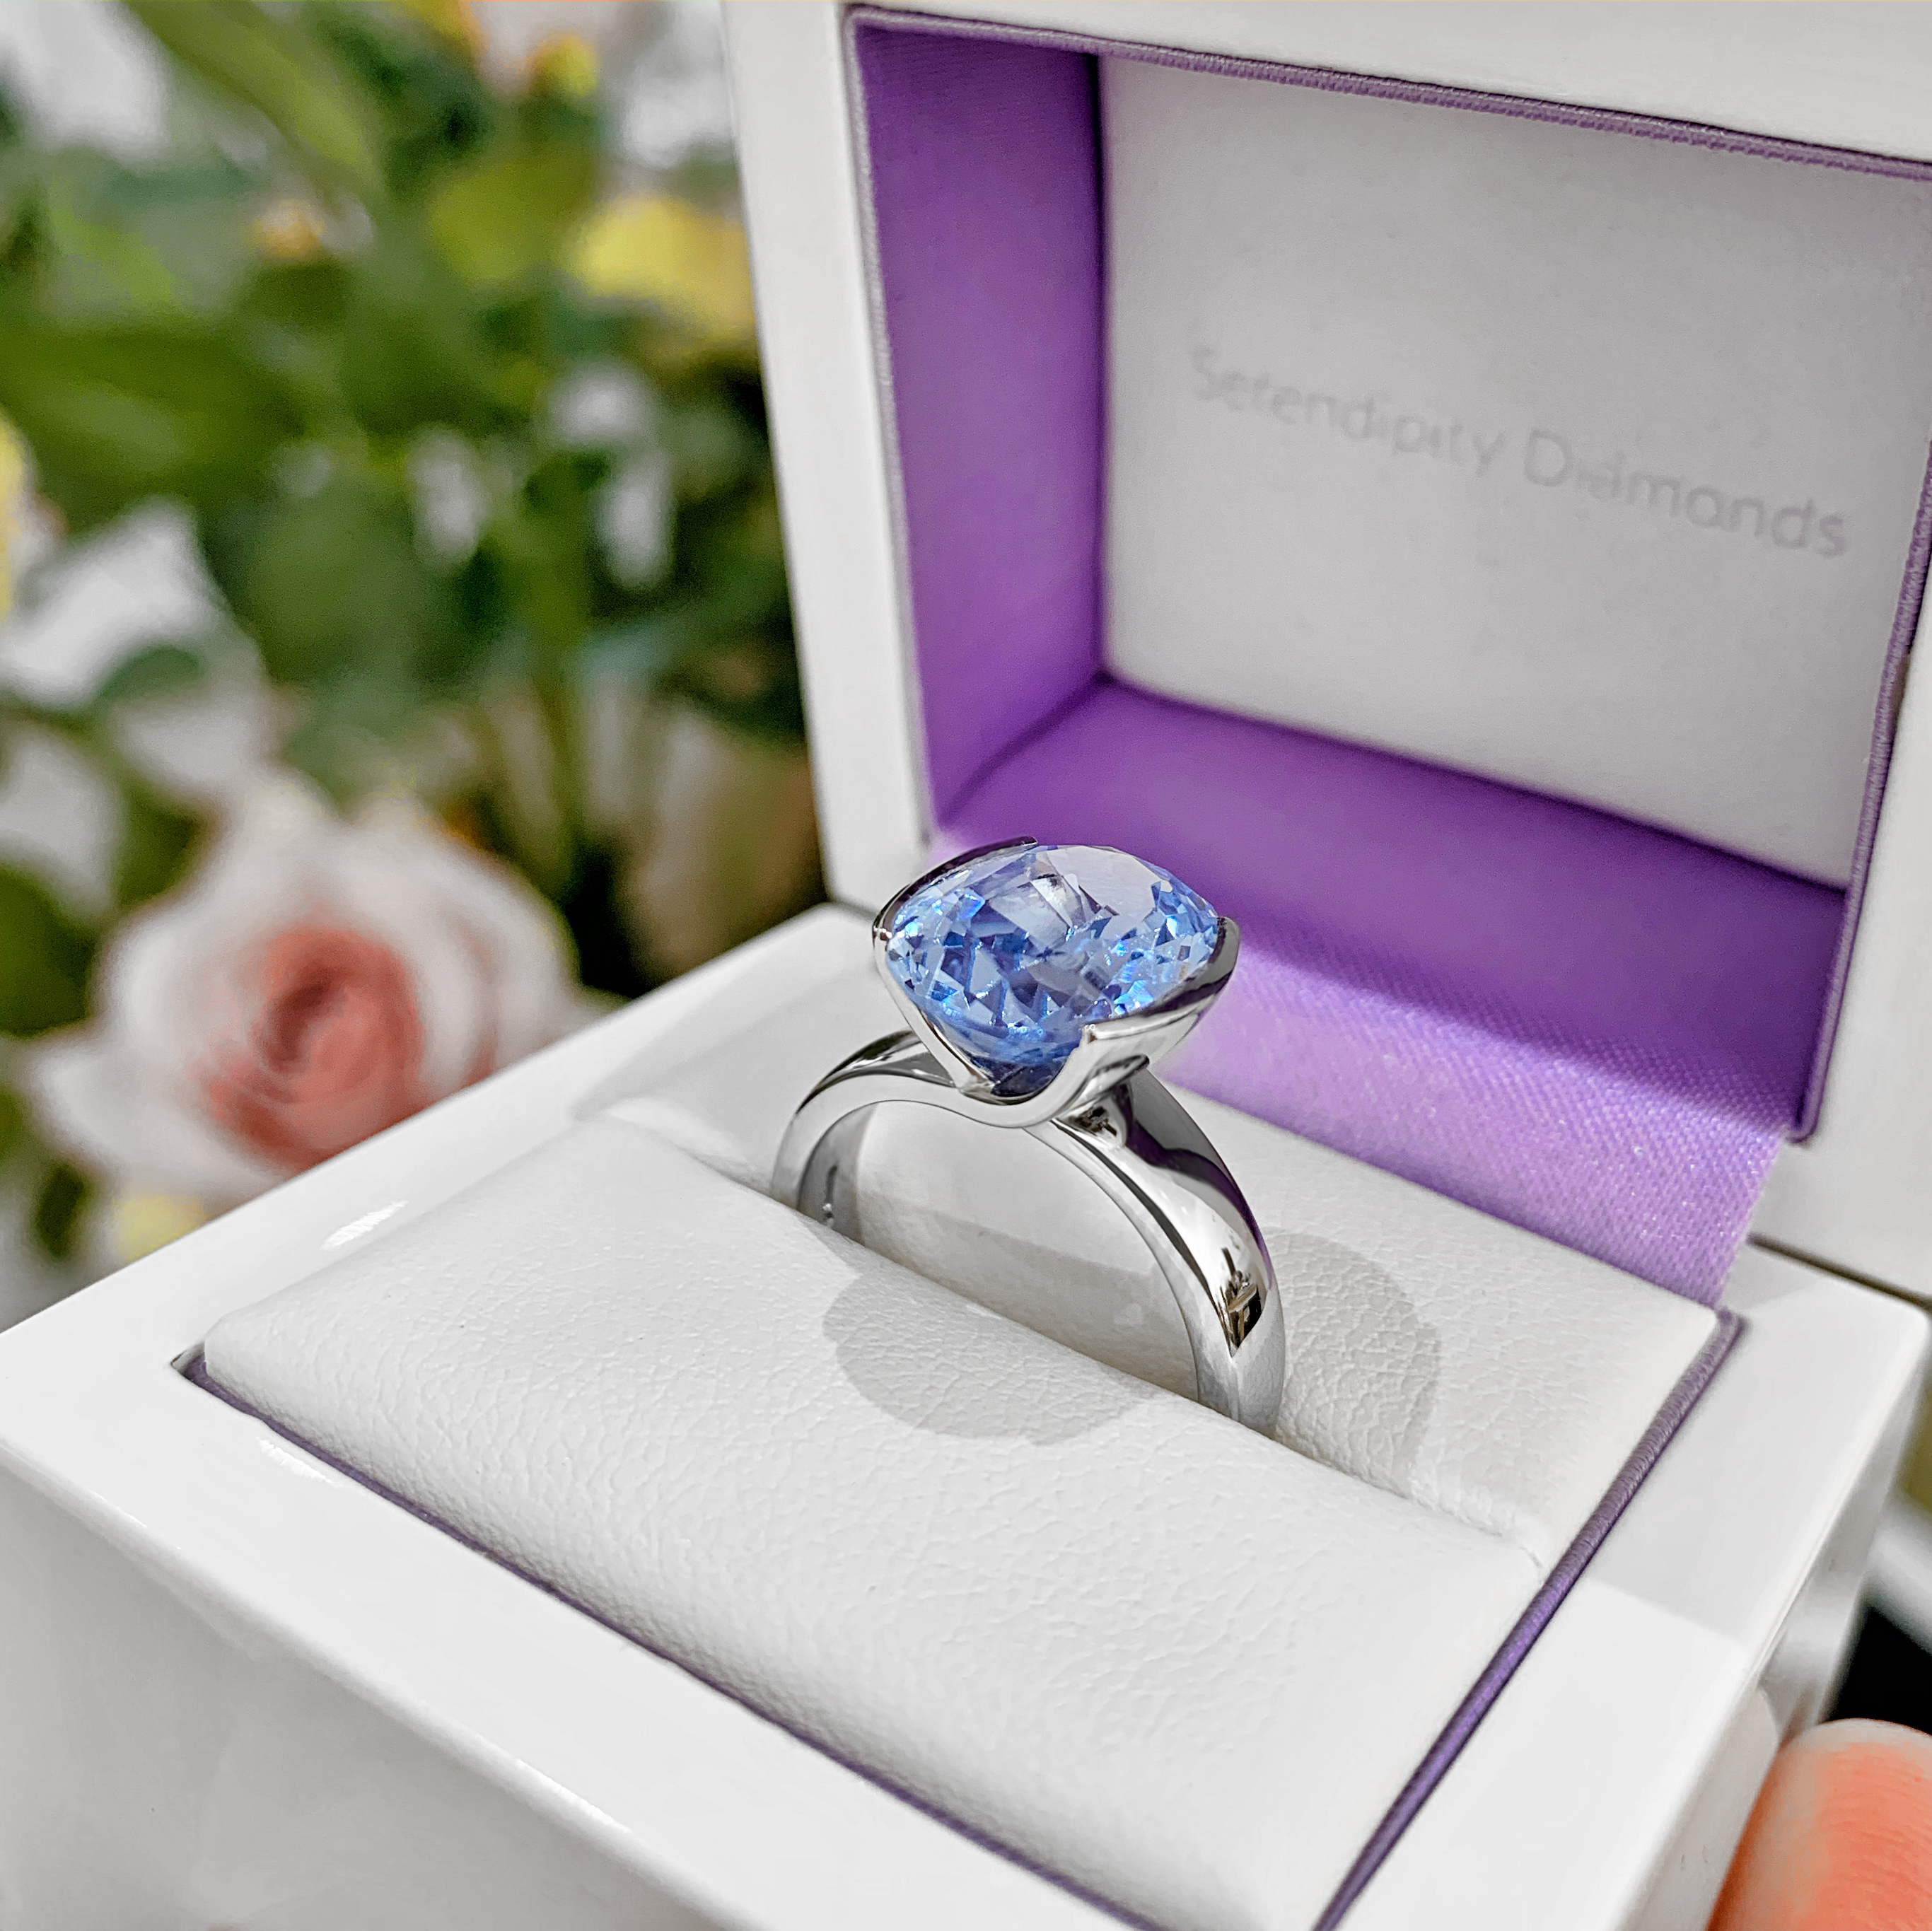 Aquamarine bespoke ring shown boxed before collection